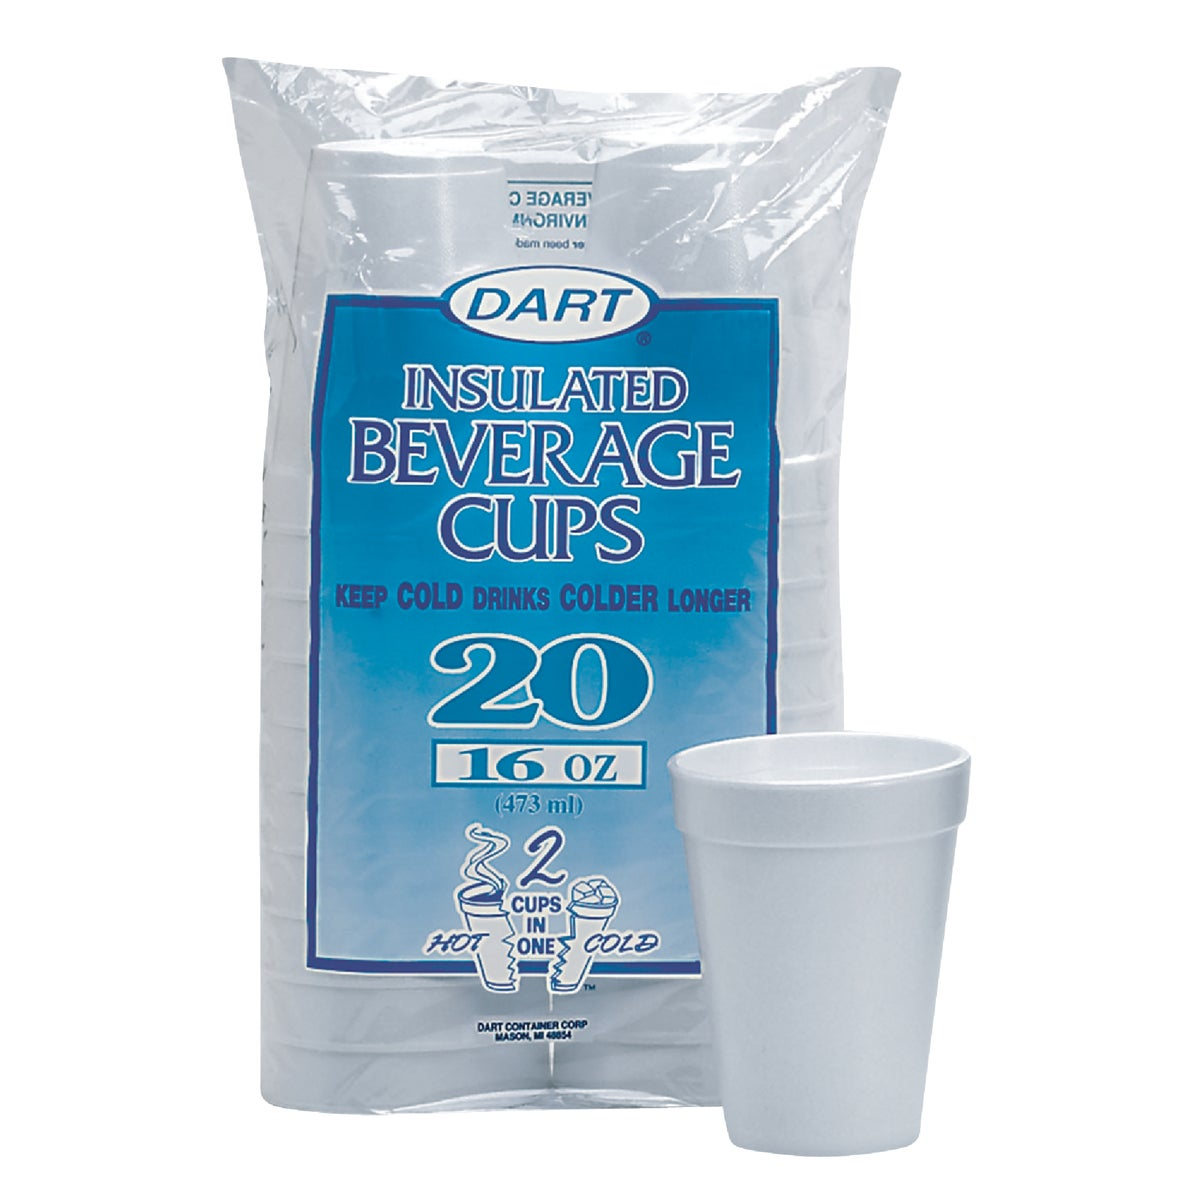 16OZ FOAM CUPS - 16FP20 by Dart Cont/d Bassett